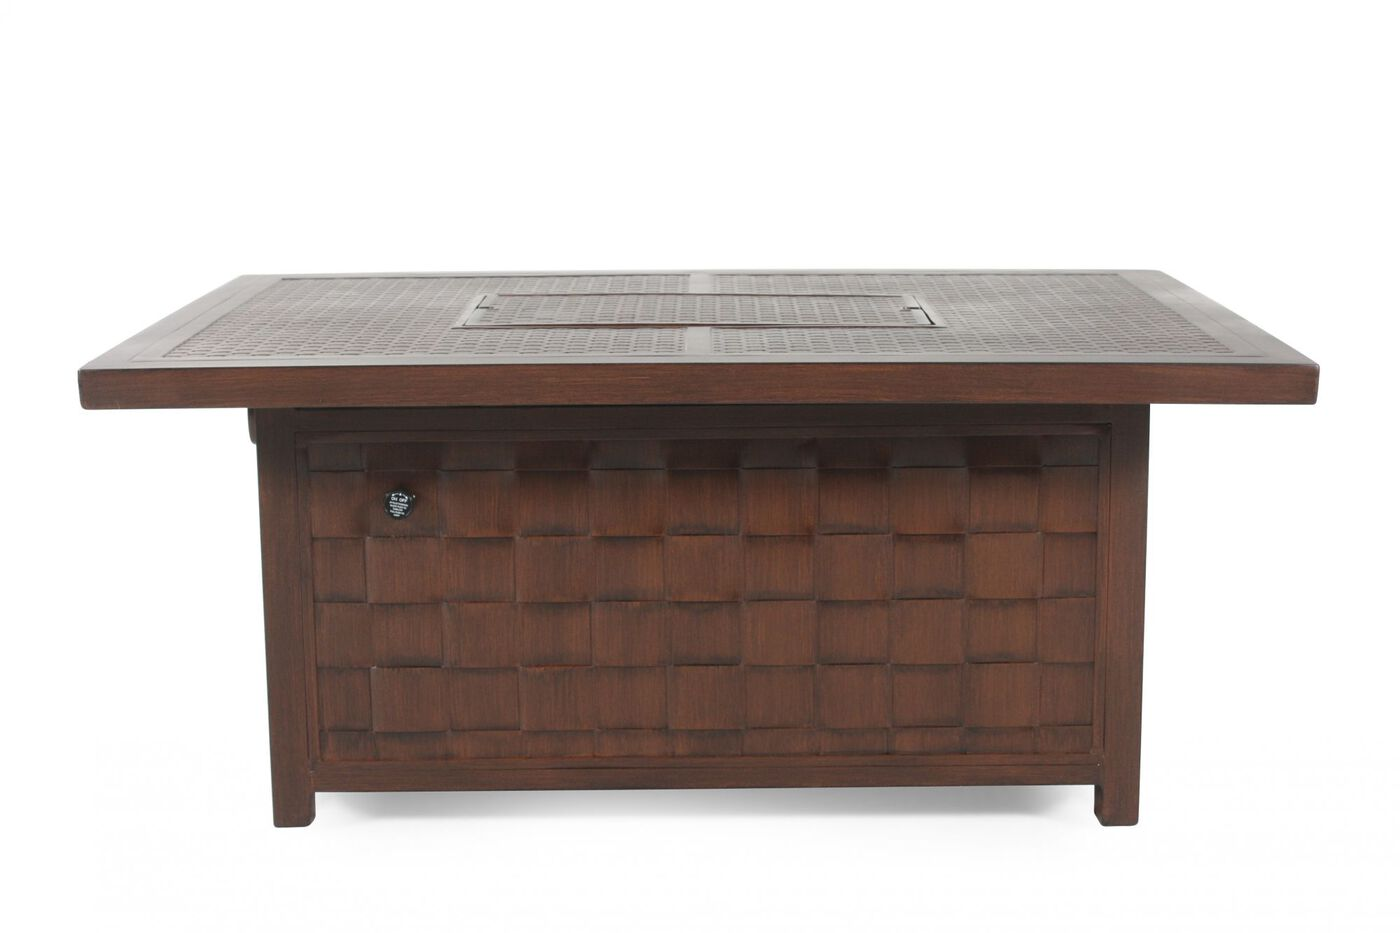 castelle spanish bay patio fire pit coffee table | mathis brothers